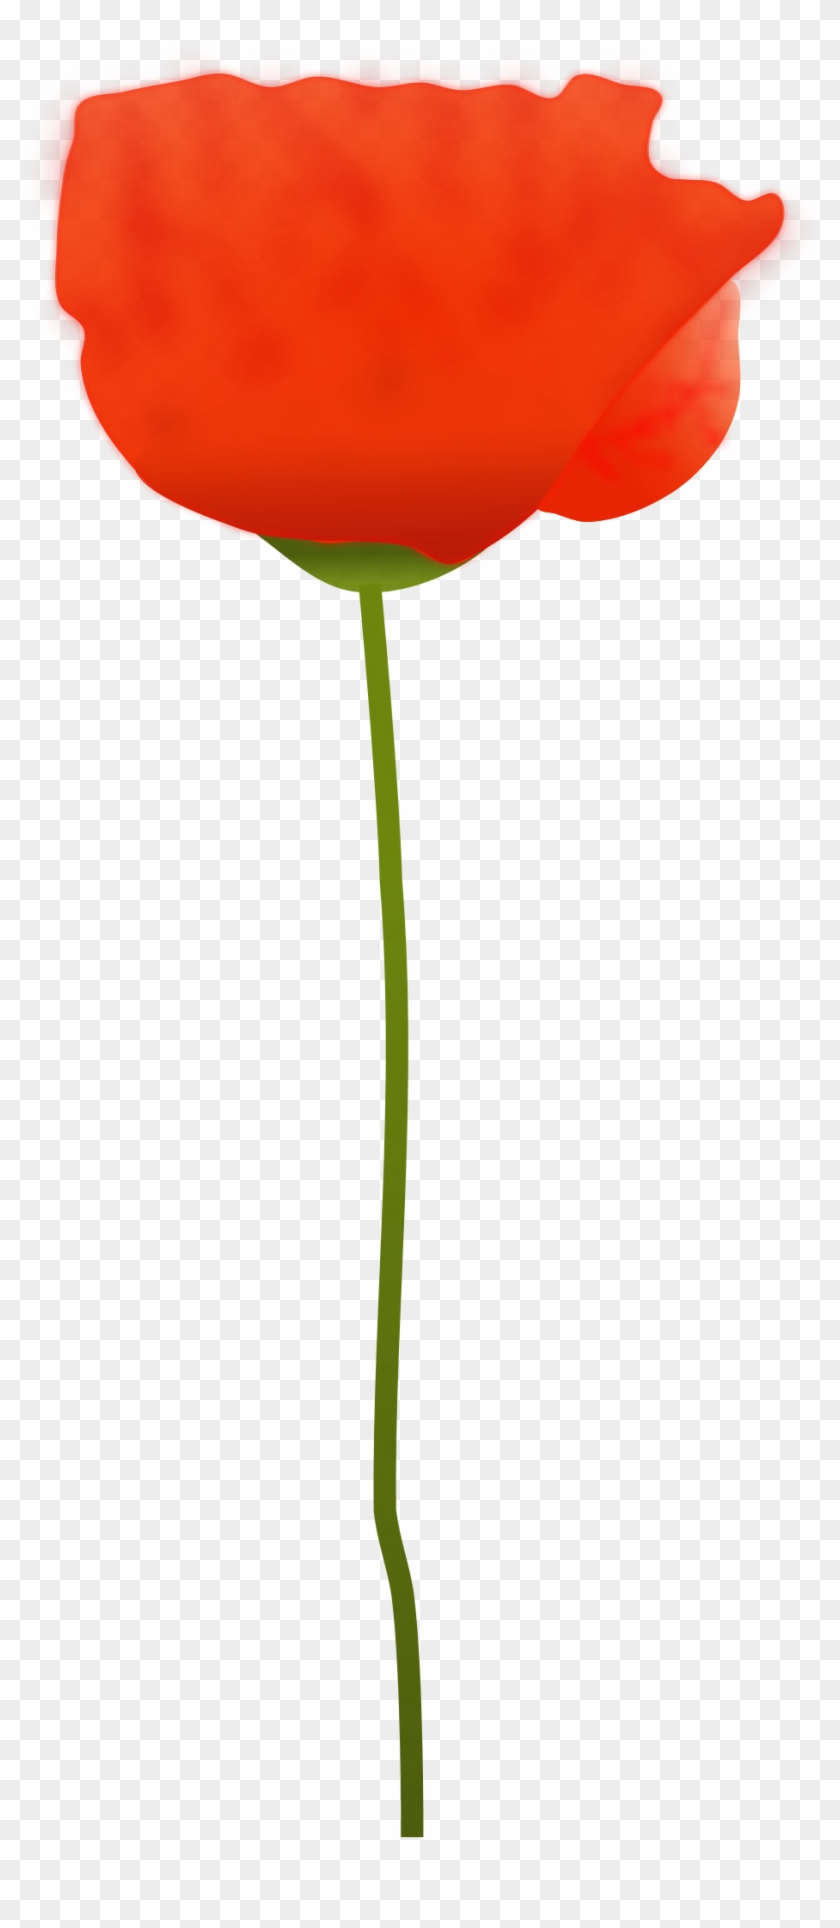 Clipart Free Picture Of A Poppy Flower Free Transparent Png